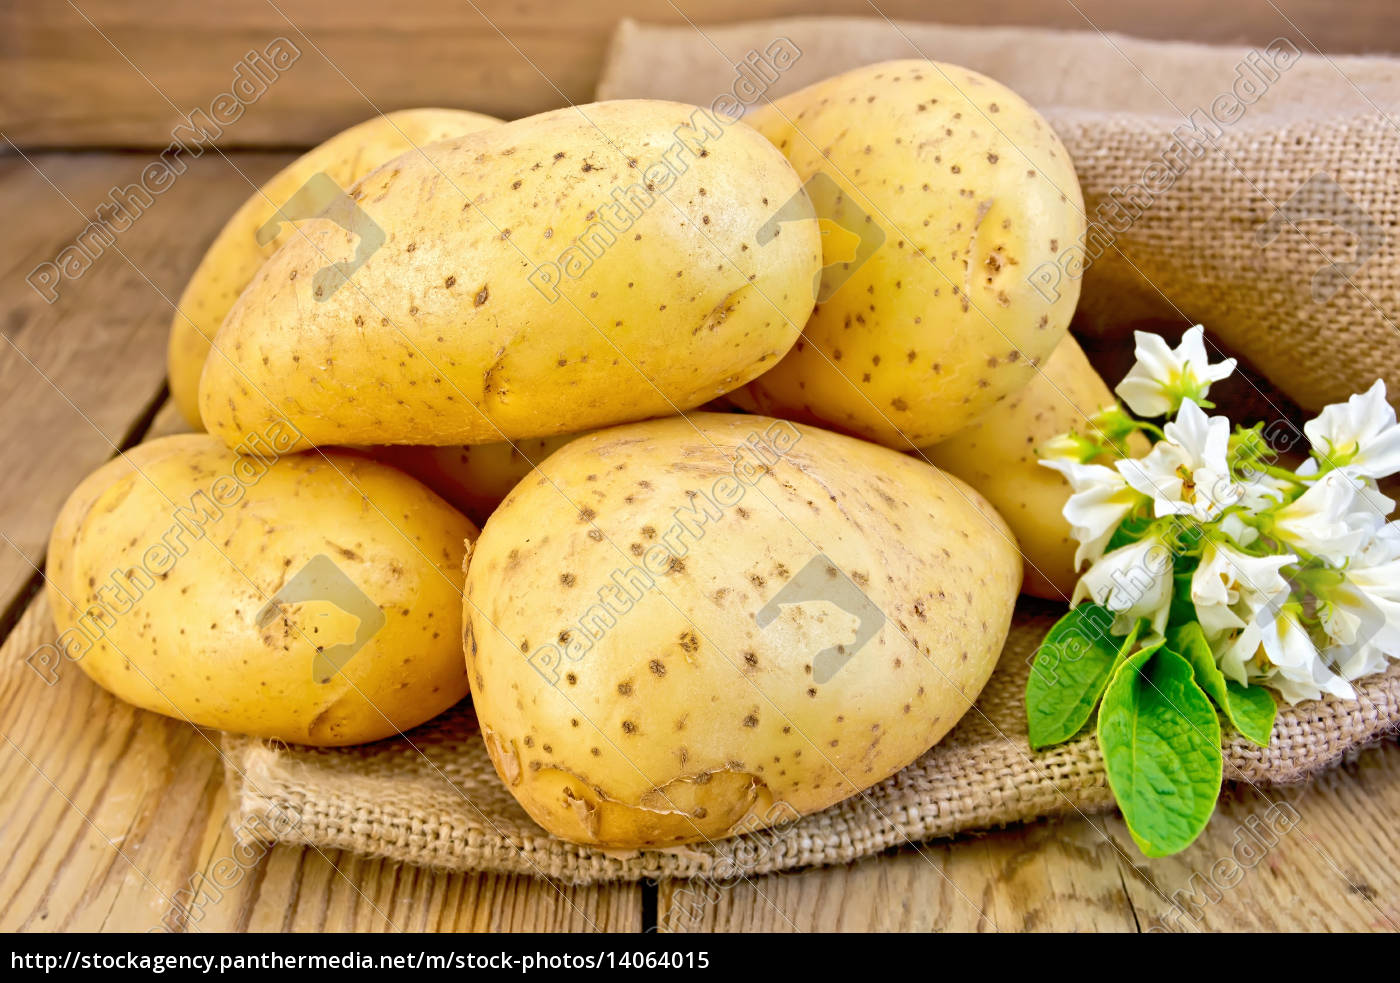 potatoes, yellow, with, flower, on, sacking - 14064015